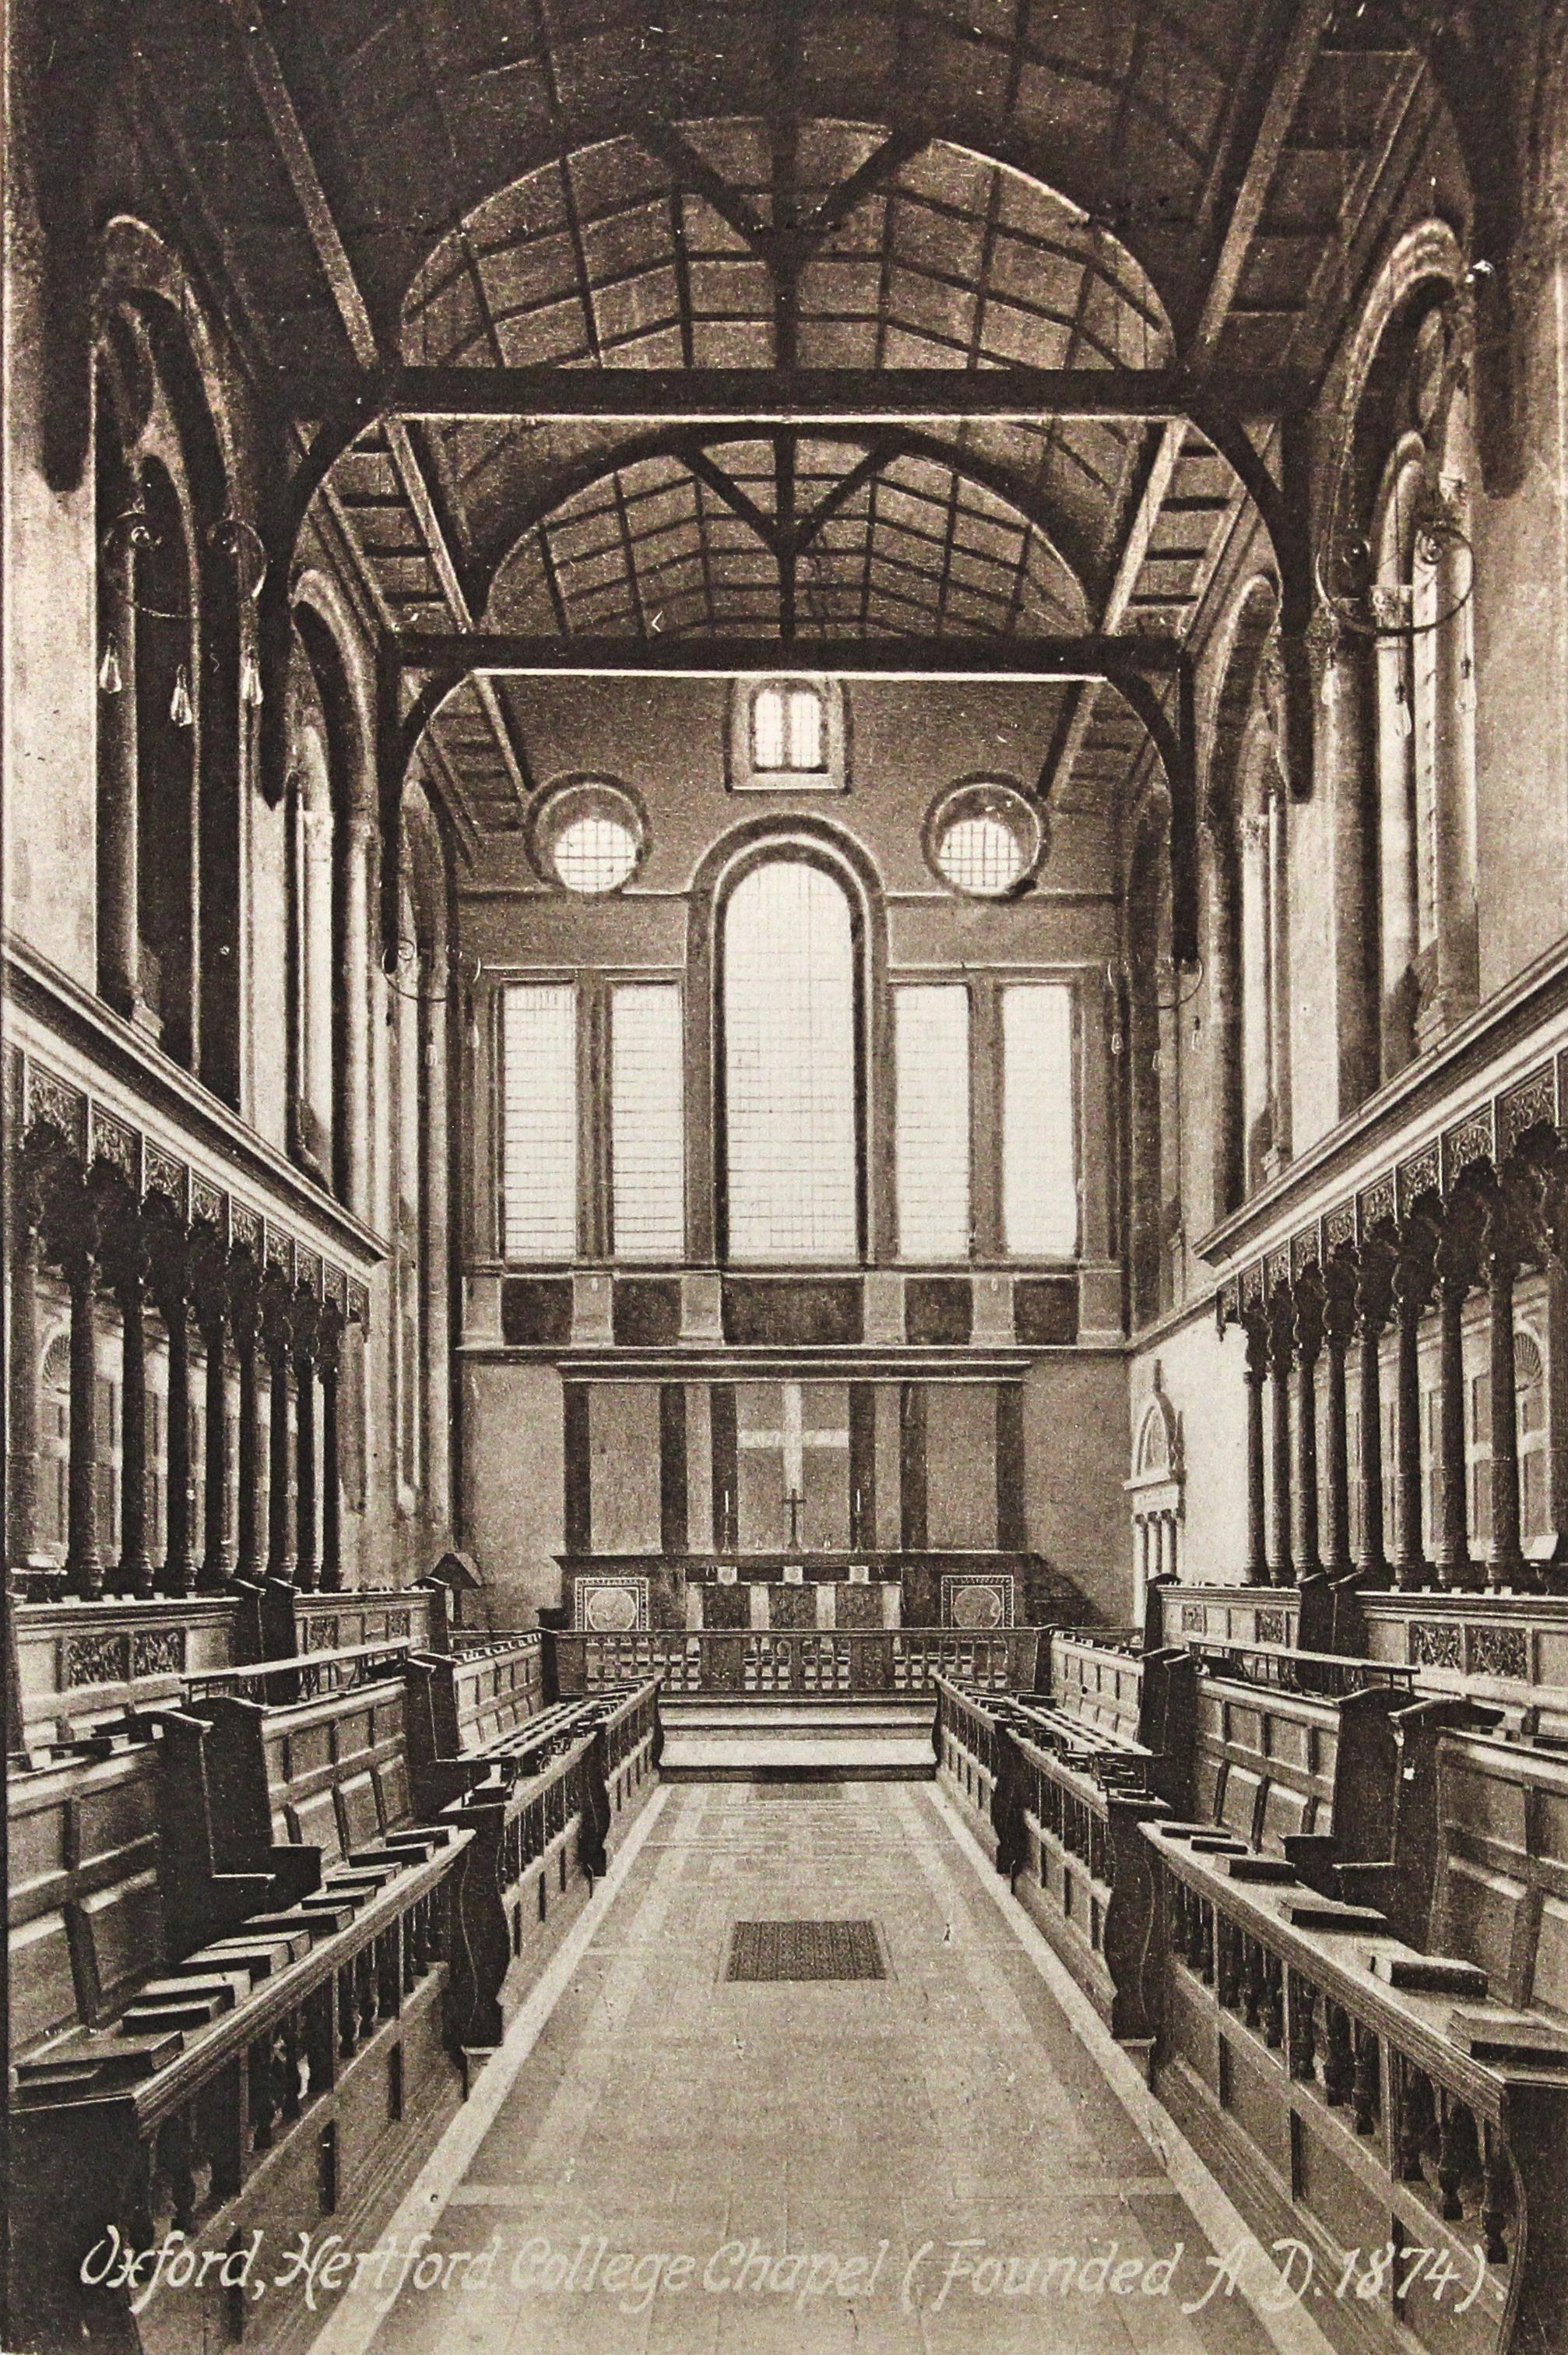 Old postcard of college chapel interior